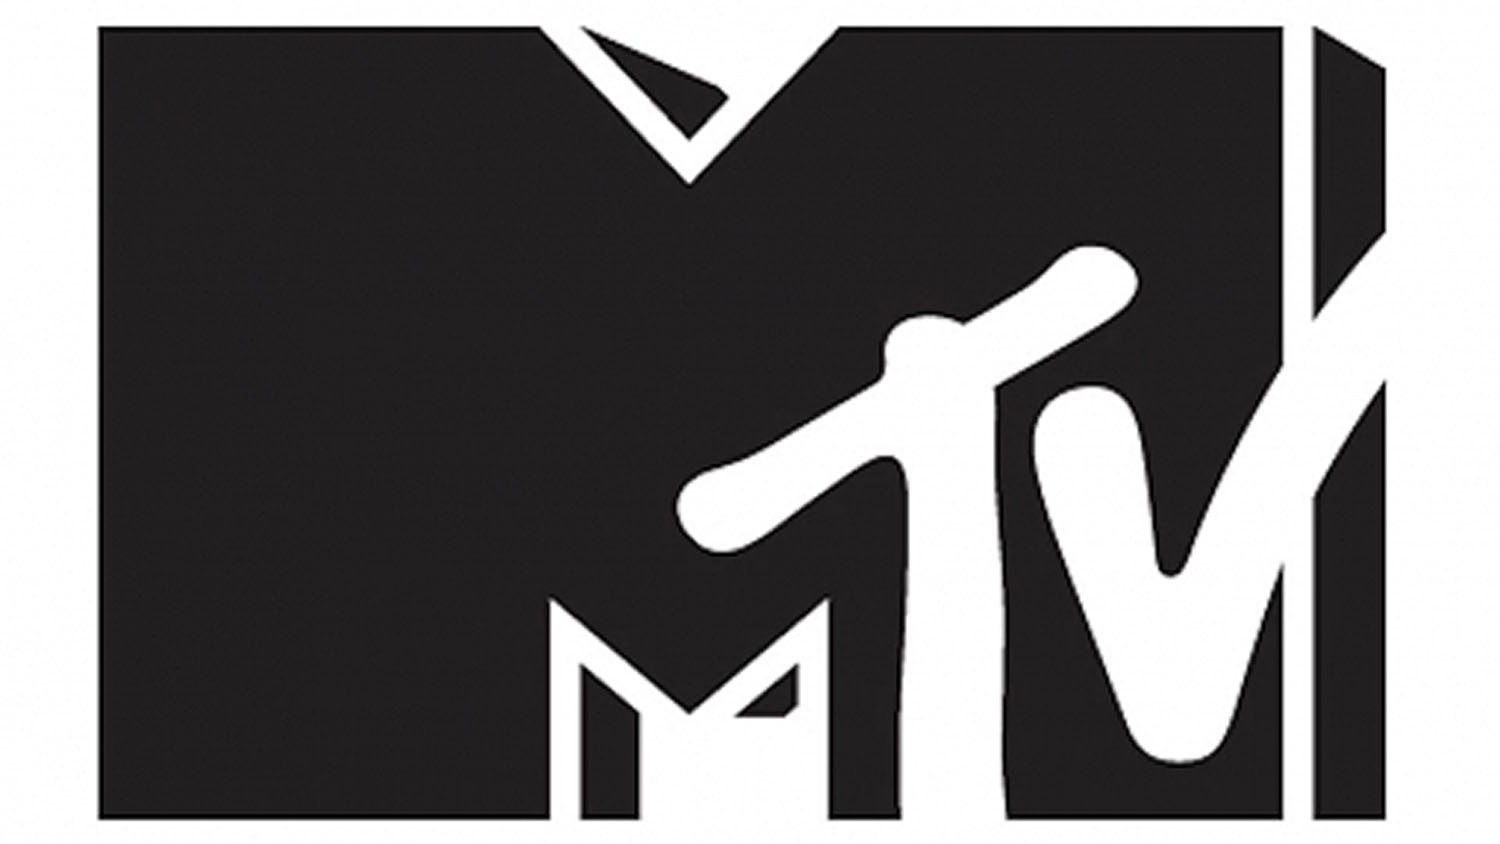 Workerbee lands first MTV order with dating series